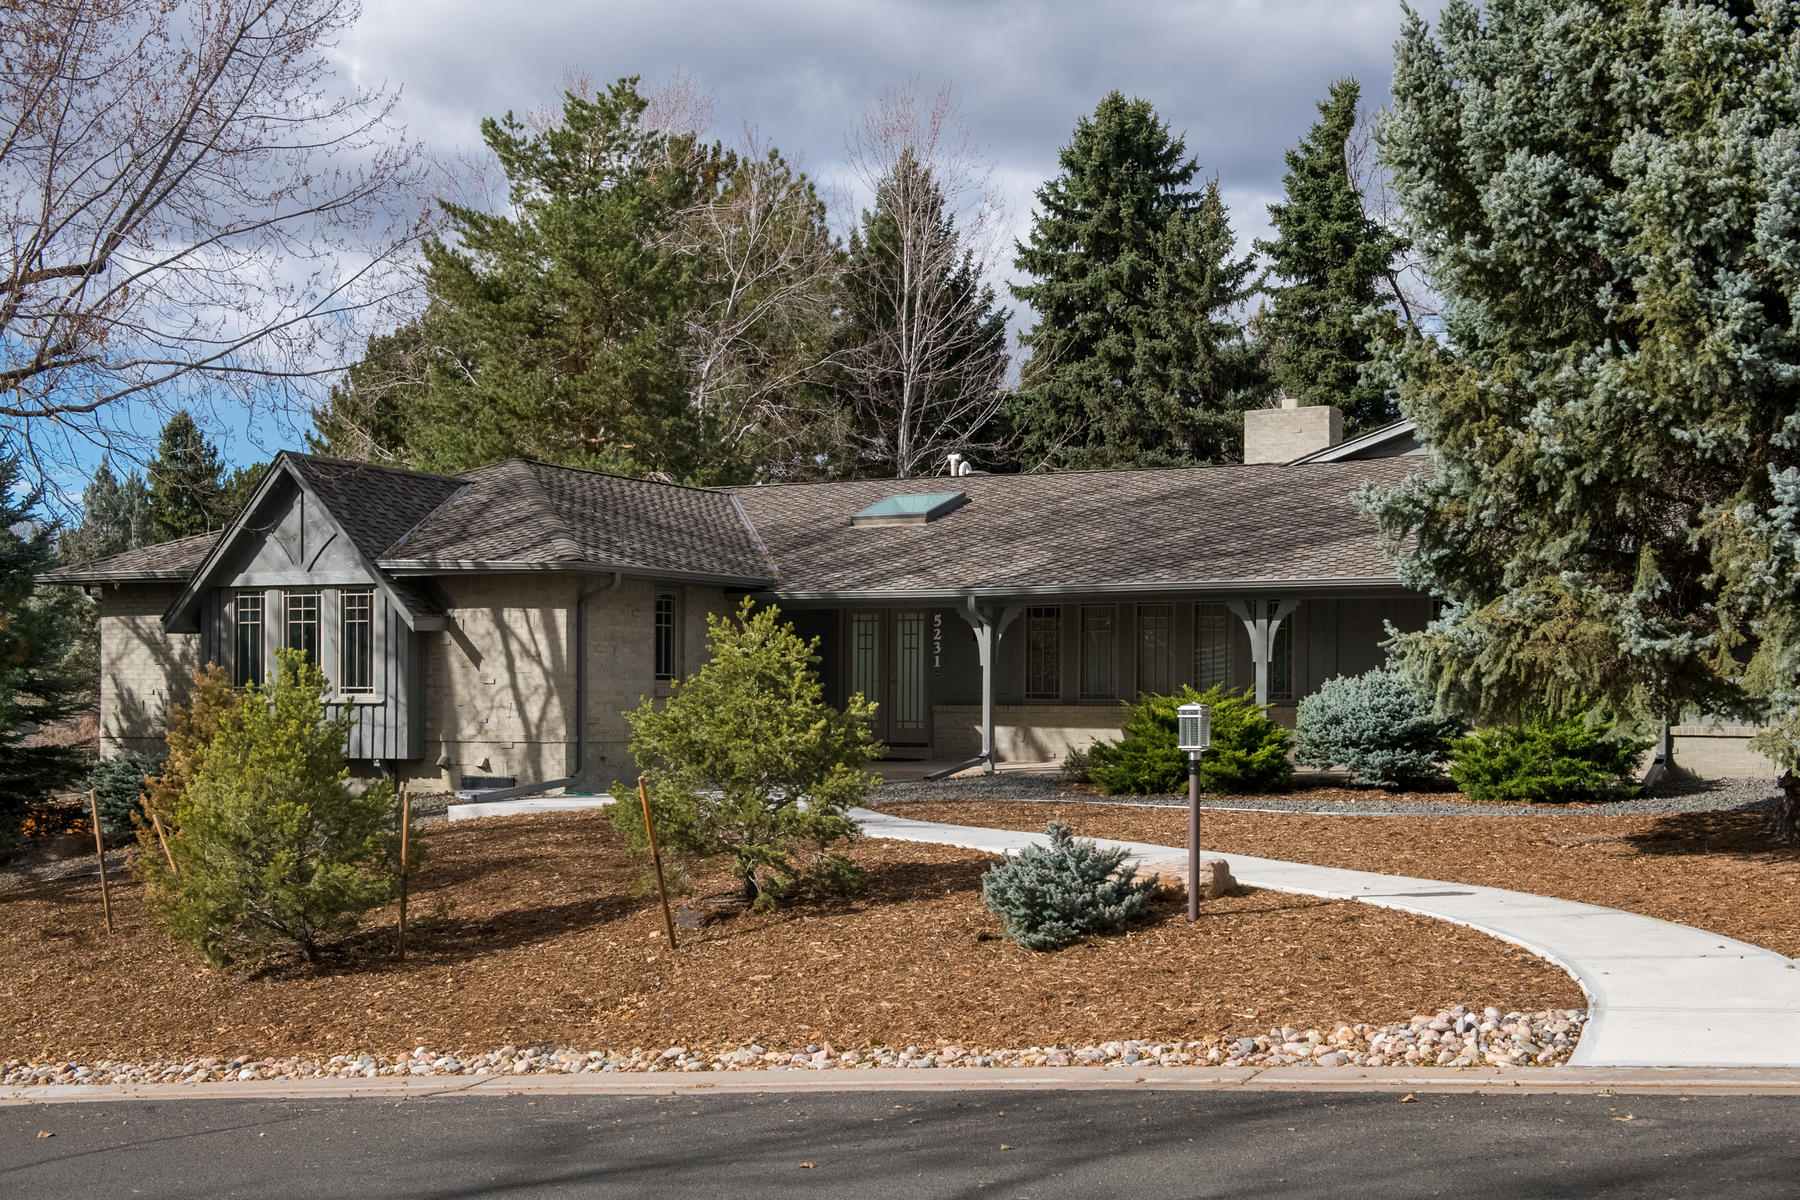 Property for Active at Mid-Century Modern In Desirable Cherry Hills North 5231 Sanford Cir Englewood, Colorado 80013 United States